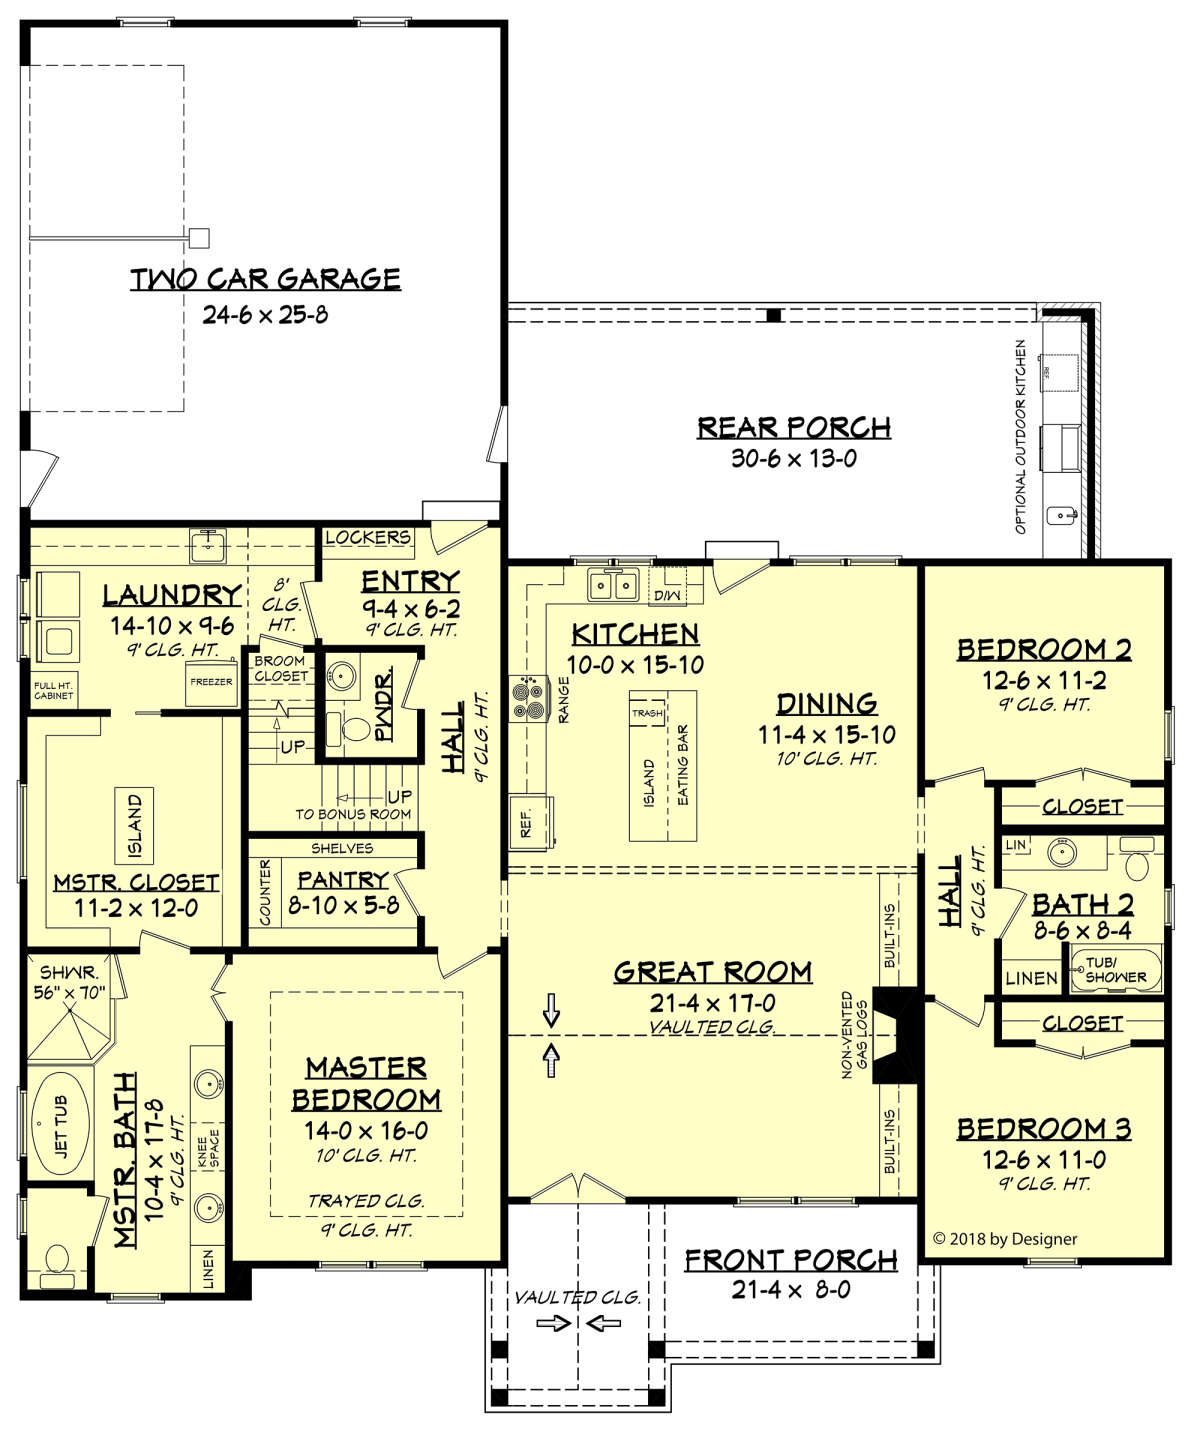 Modern Farmhouse Plan 2 201 Square Feet 3 Bedrooms 2 5 Bathrooms 041 00190,Teal And Brown Color Combinations